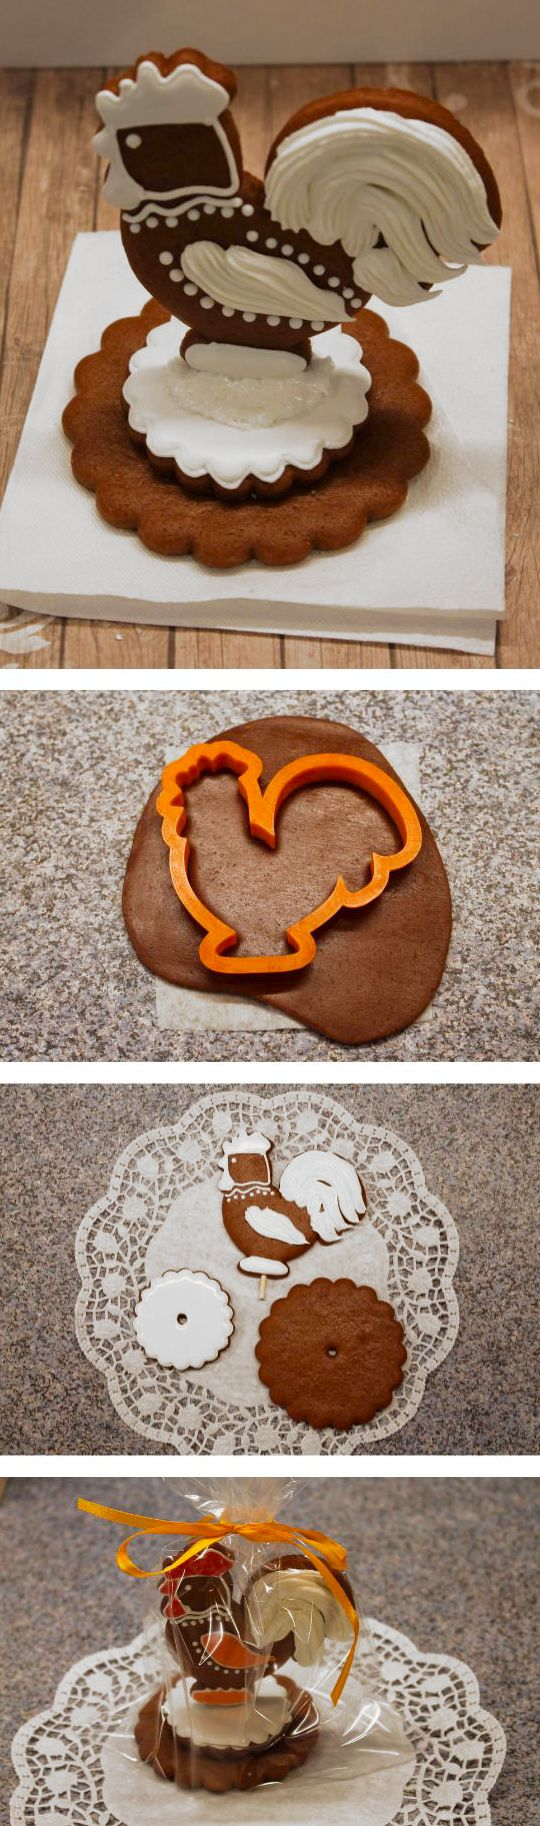 How to make gingerbread 3D souwenir. Click on image to see step-by-step tutorial